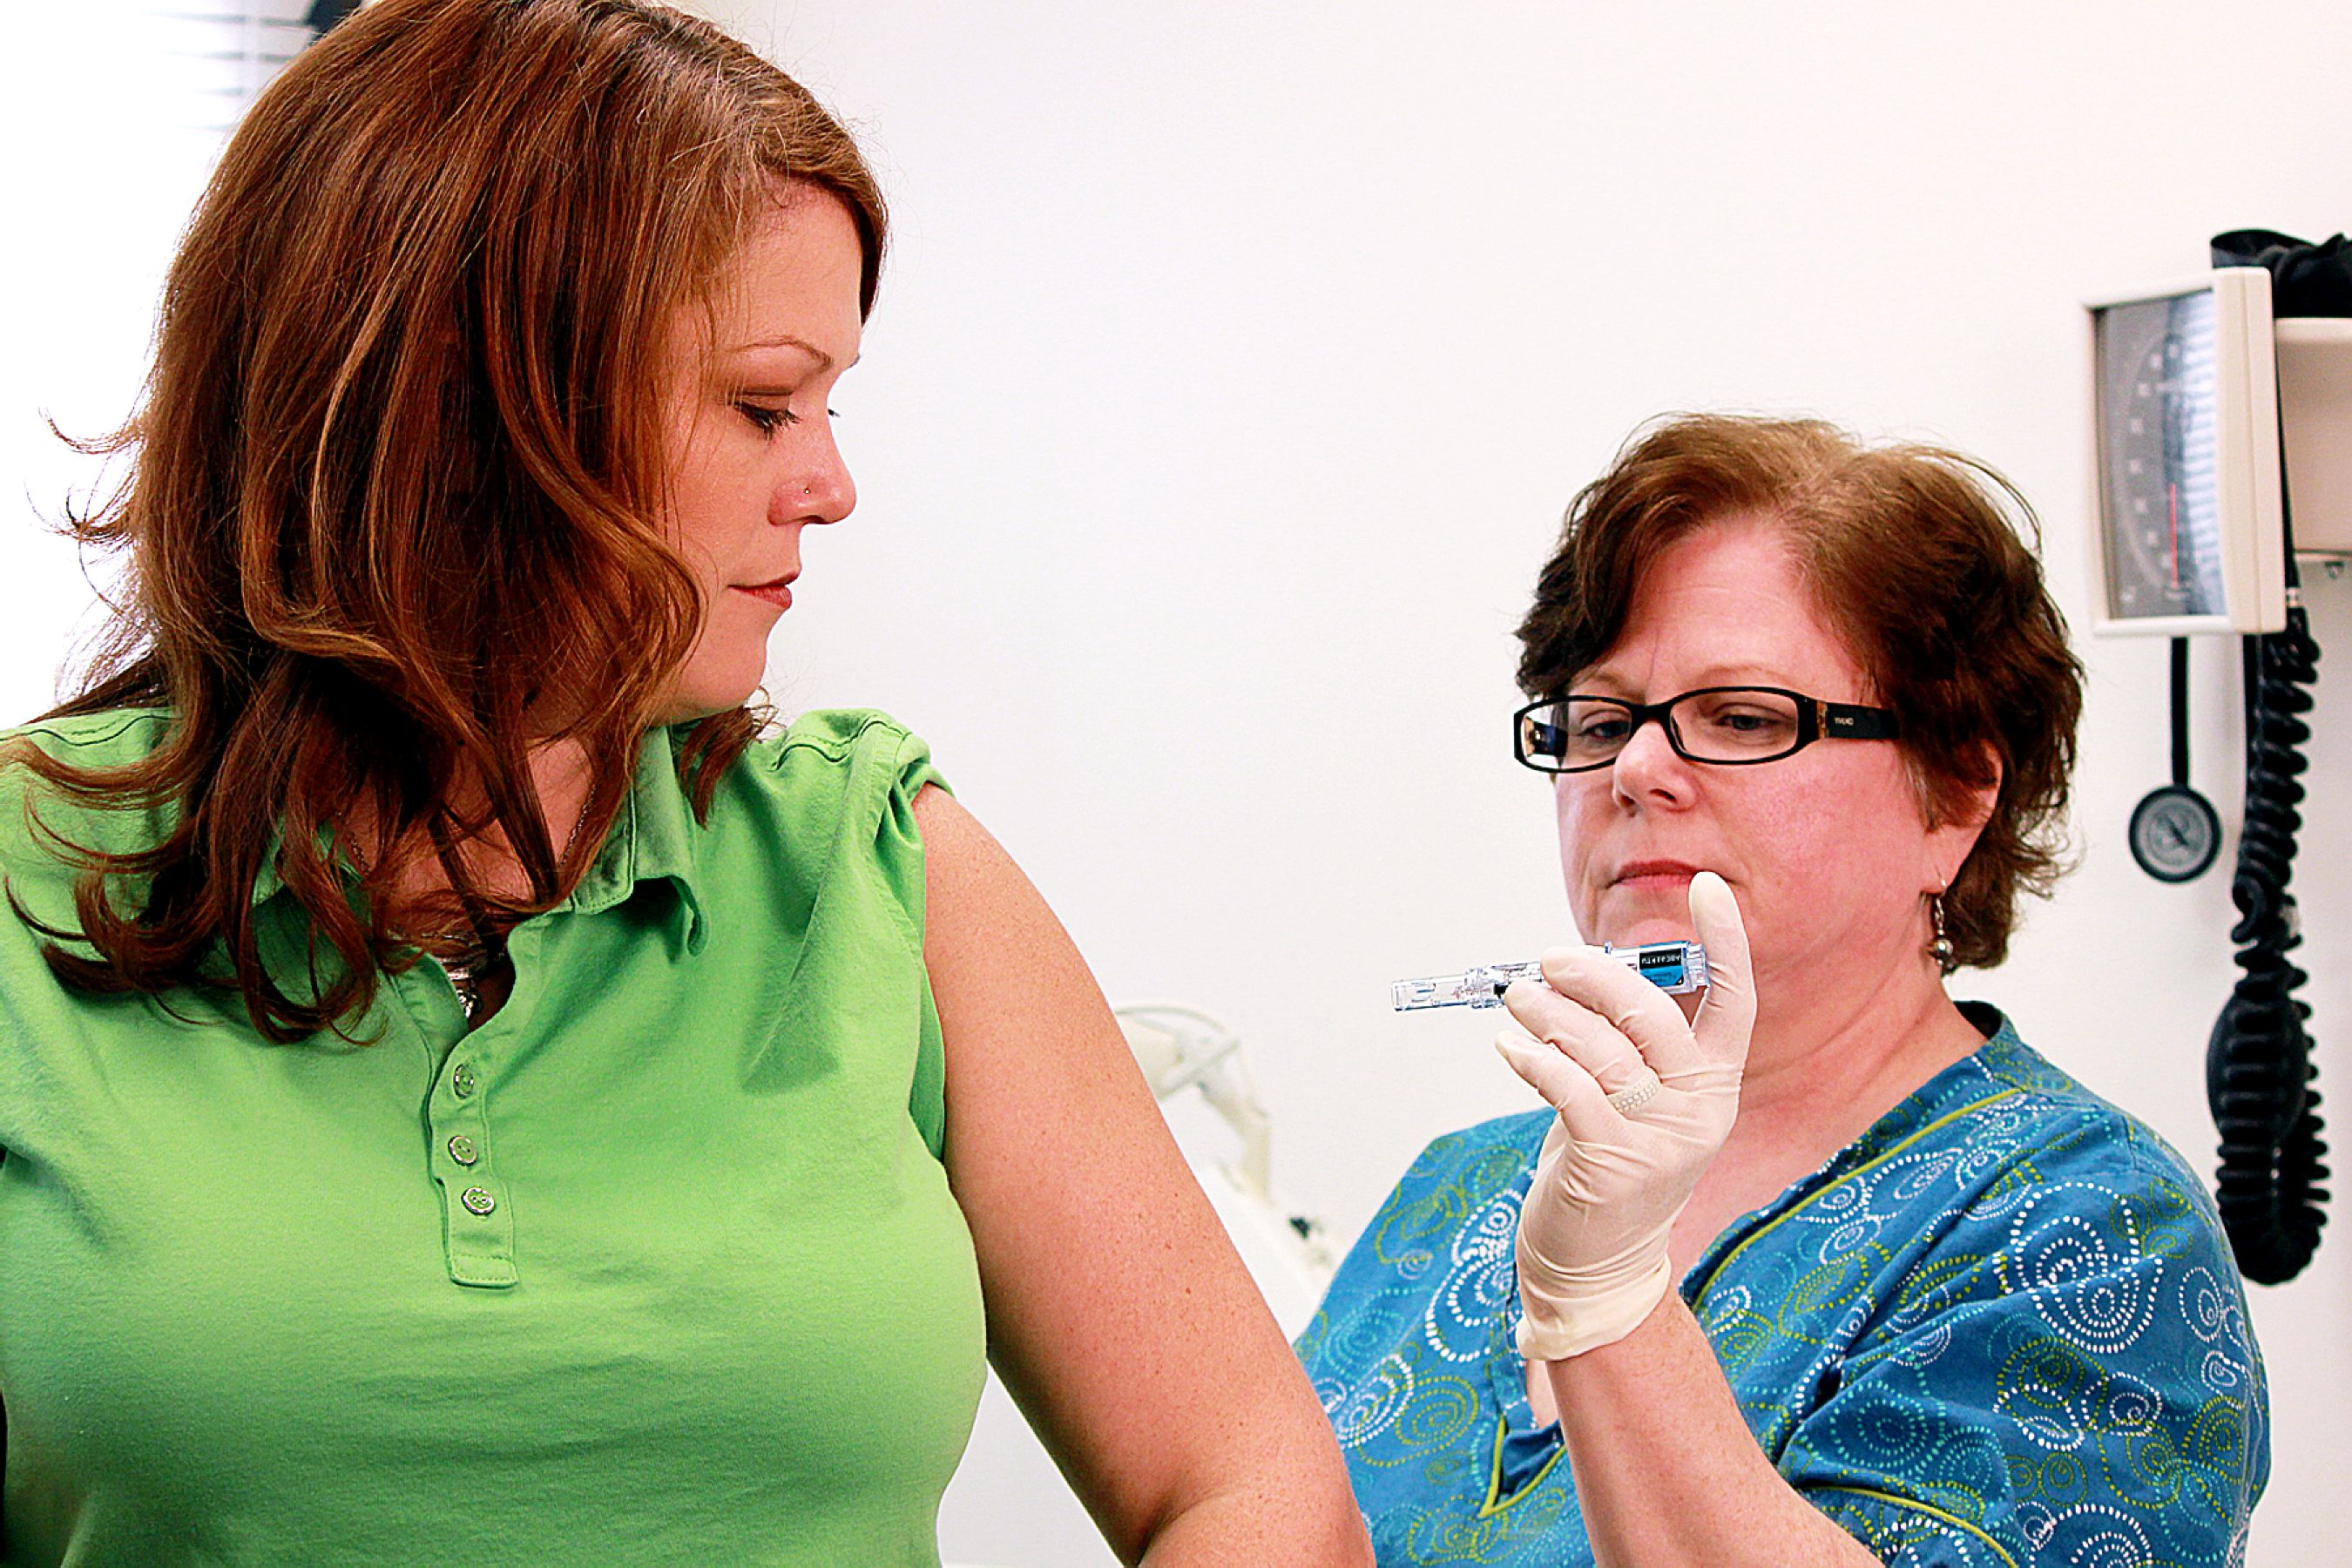 Flu vaccine will protect against the three influenza viruses tha